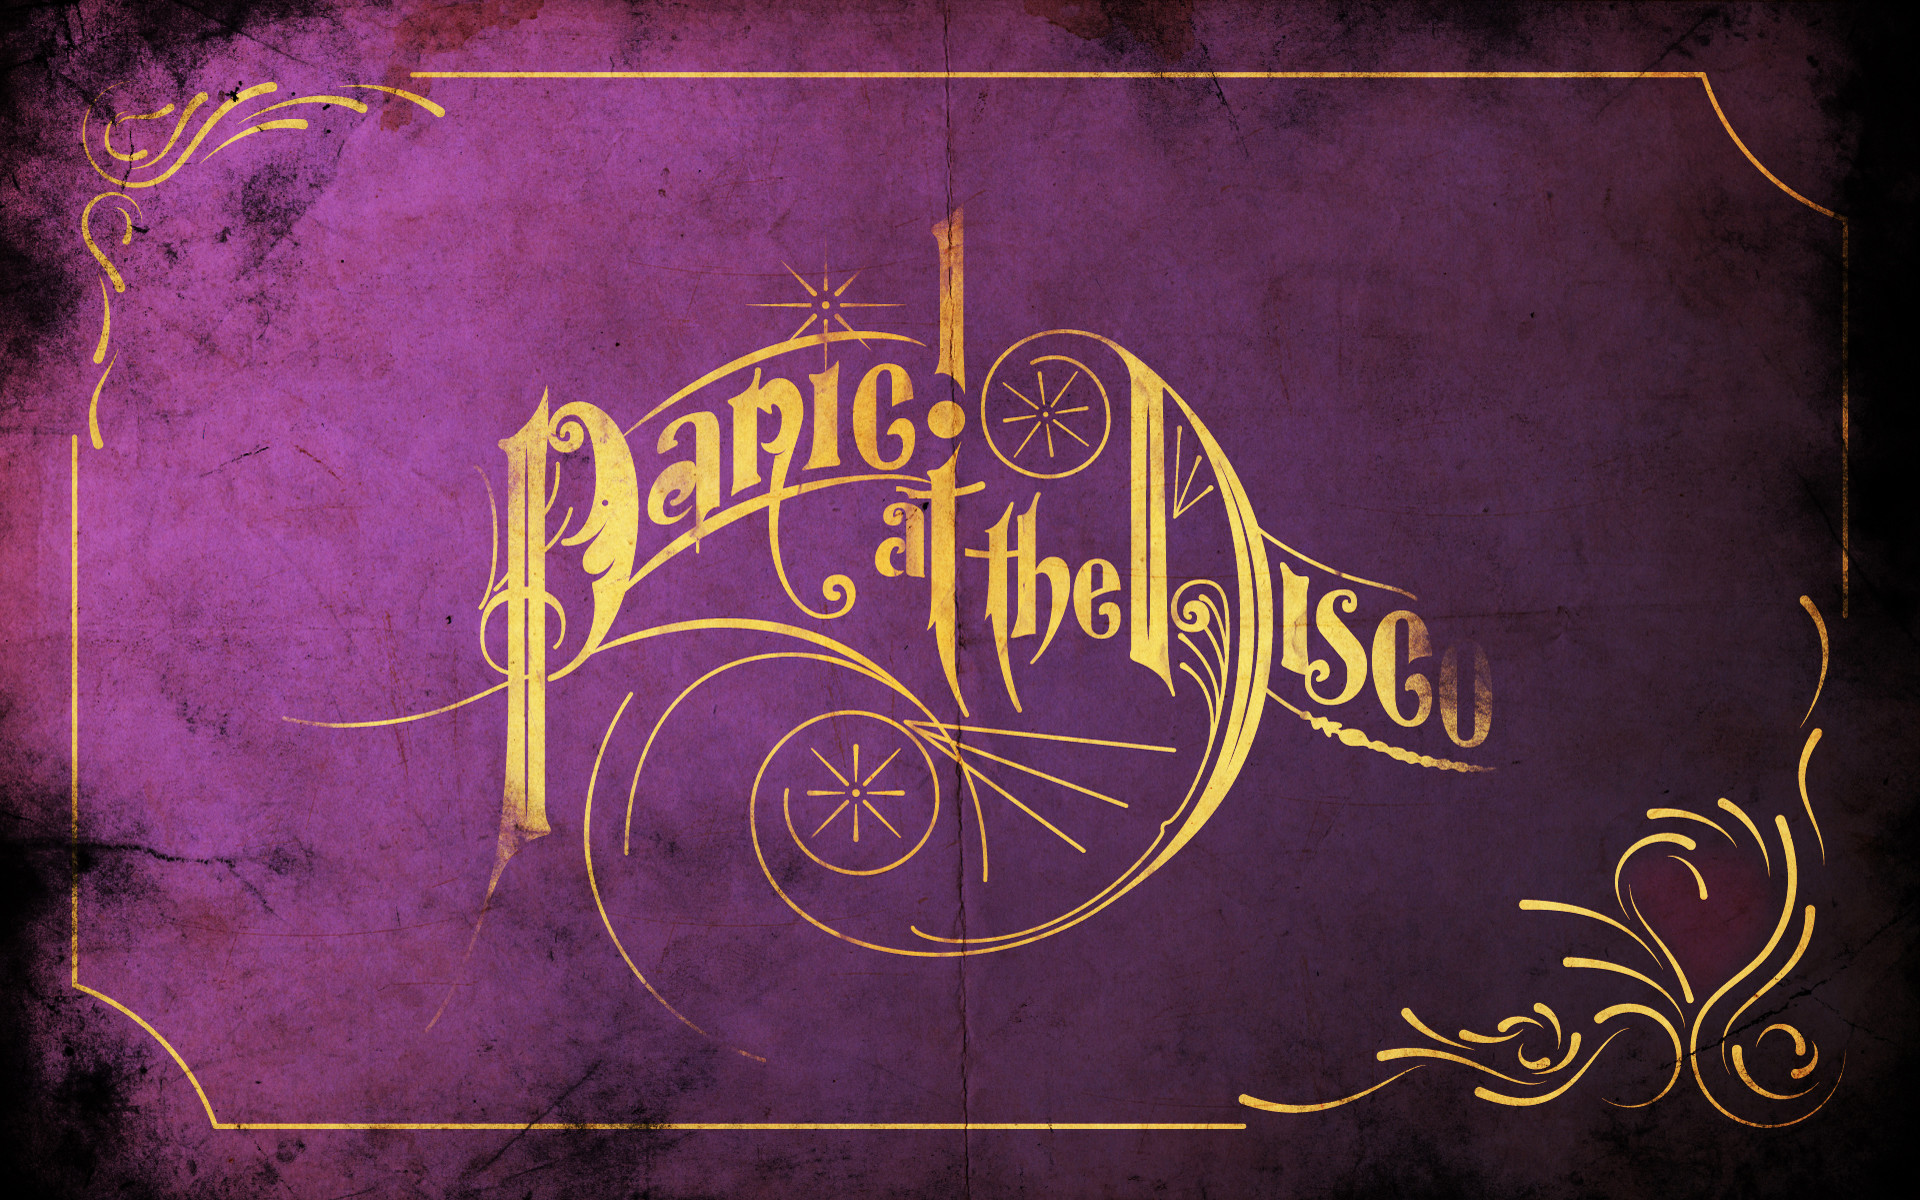 Panic at The Disco Wallpaper